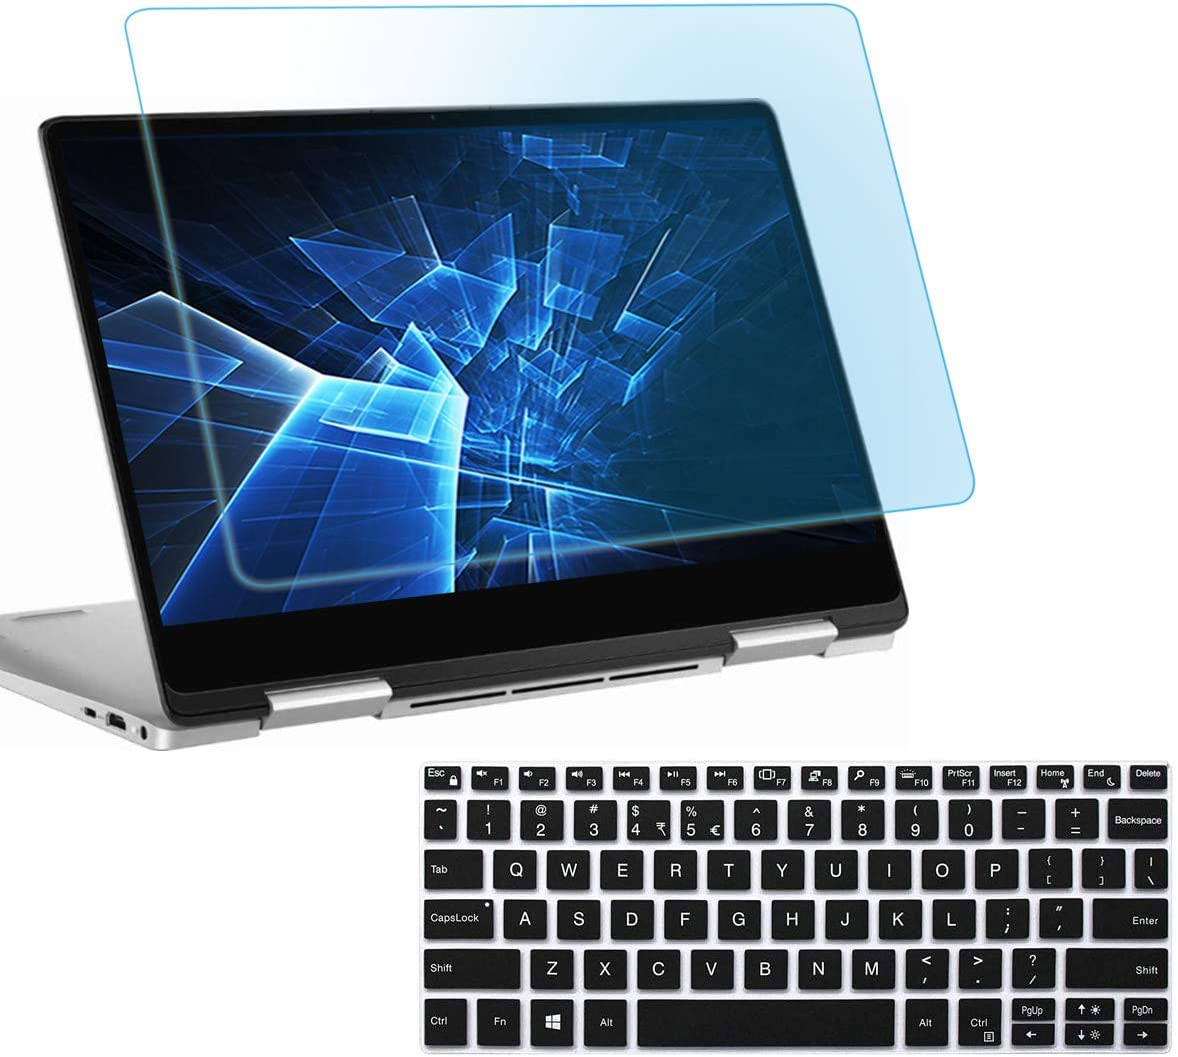 Anti Blue Light Glare Laptop Screen Protector for Dell XPS 13 9380 13.3 Inch with Gift Keyboard Cover, Eyes Protection Filter Block UV and Reduce Fingerprint